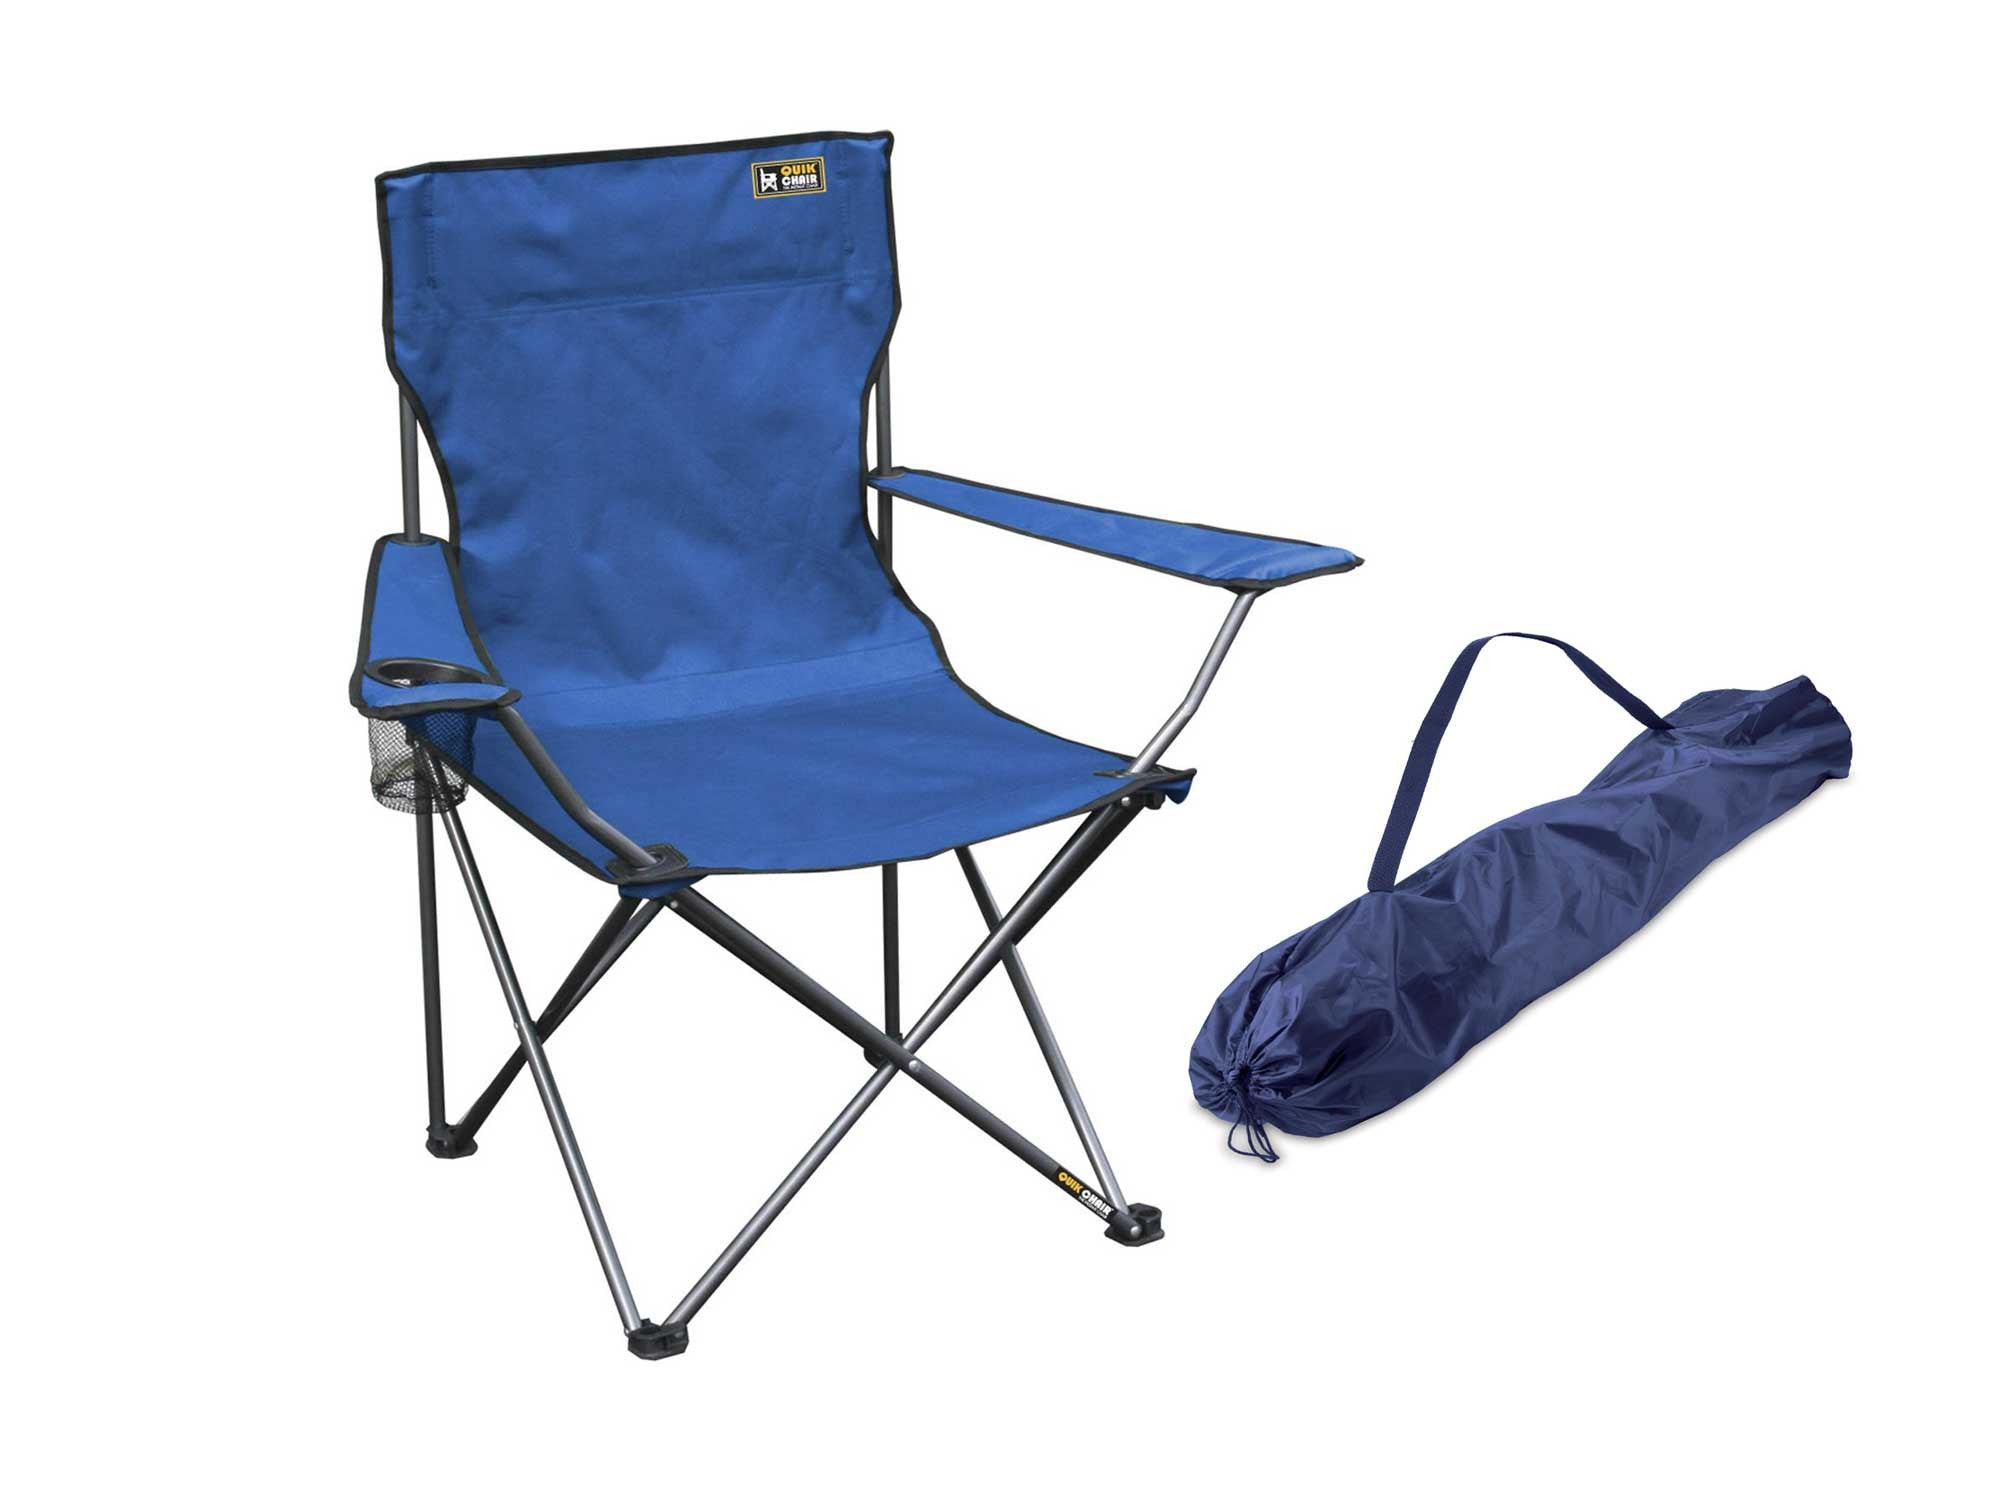 Unique Camping Folding Chairs Beautiful Chair Ideas